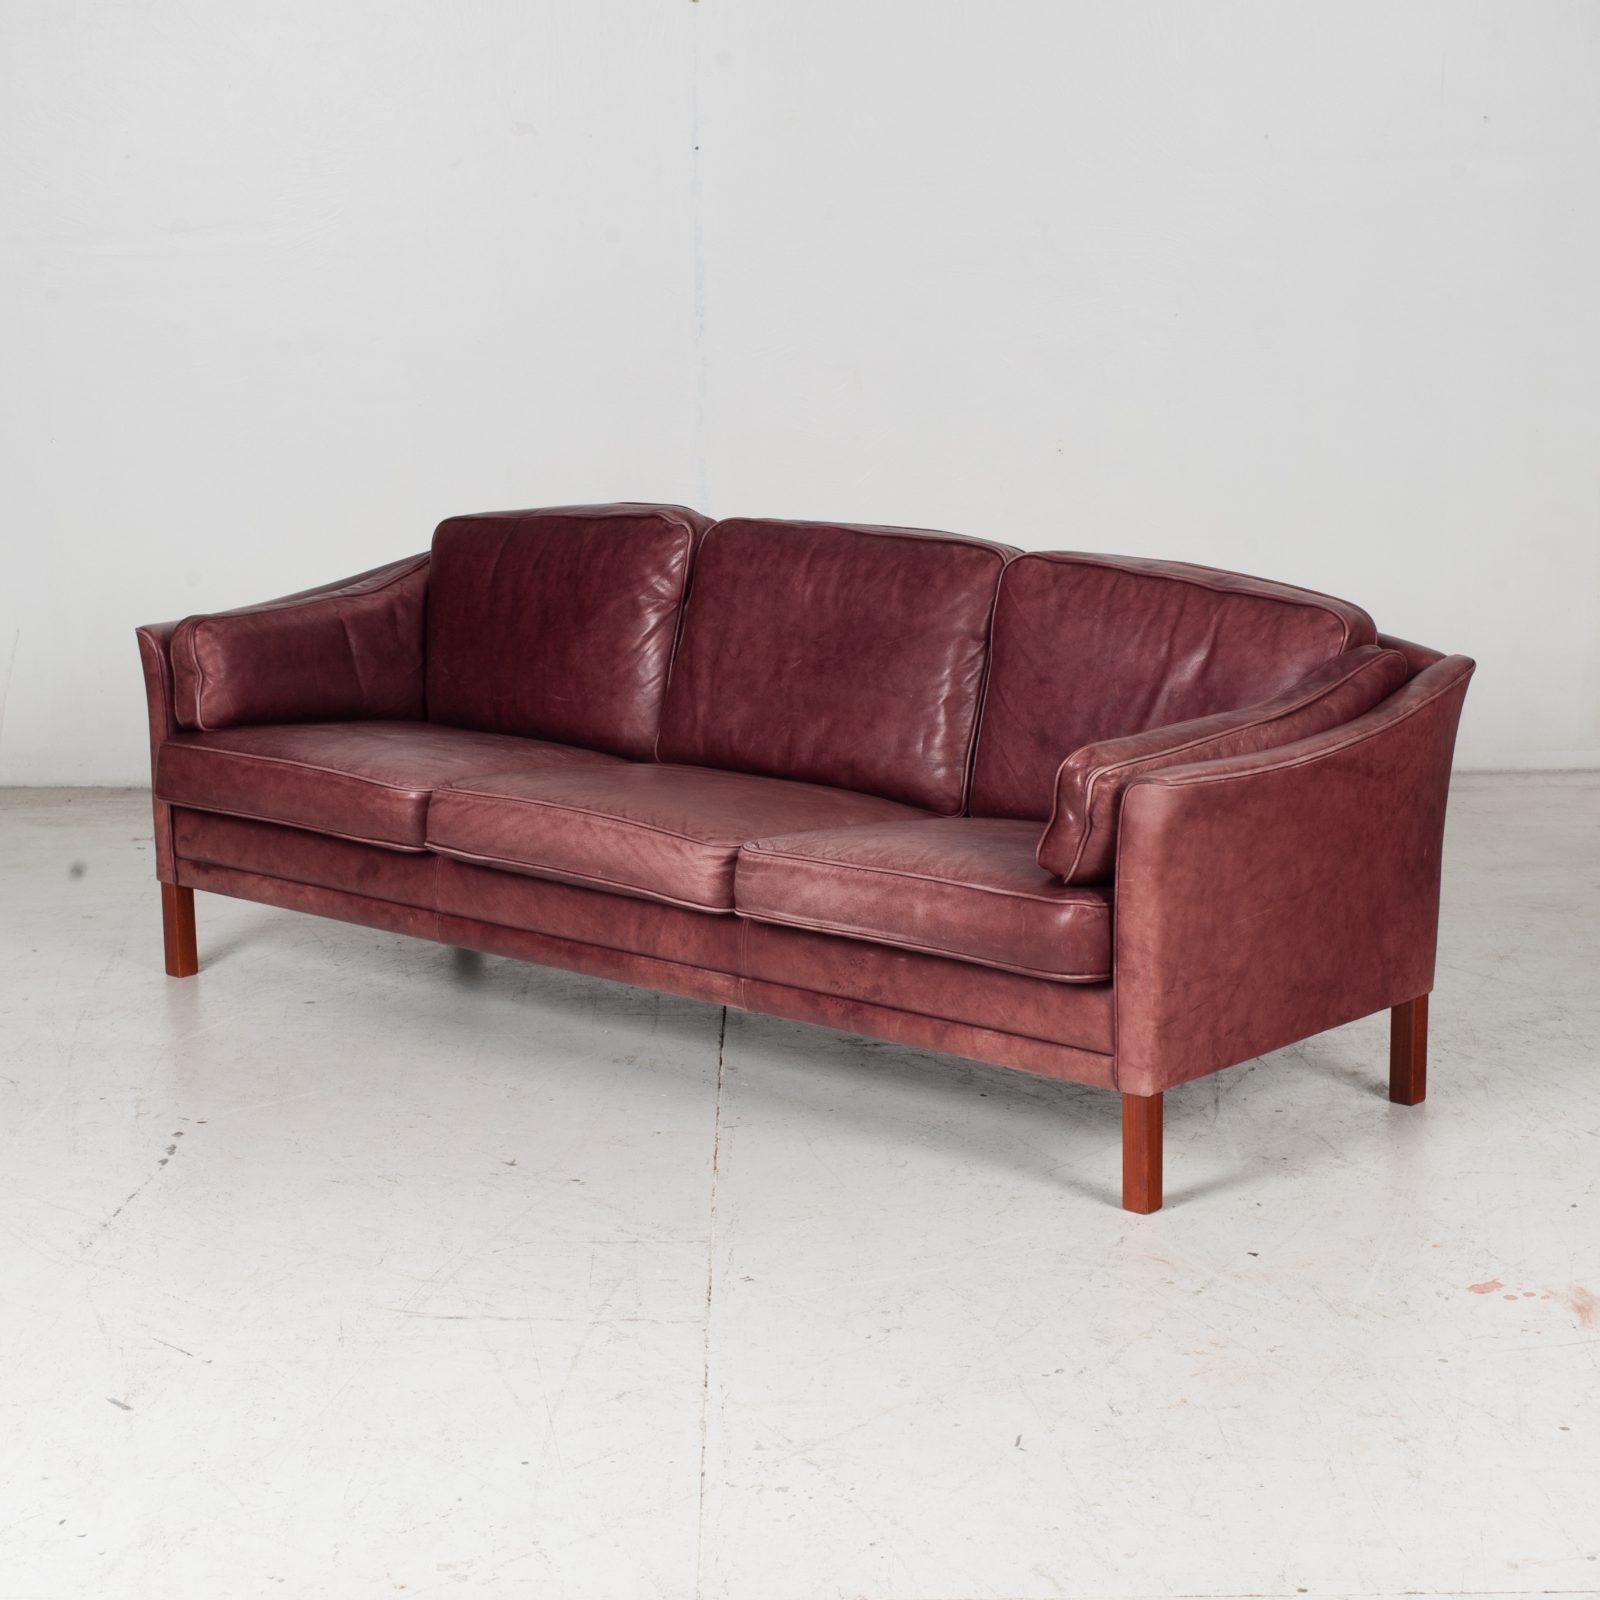 3 Seat Sofa By Mogens Hansen In Red Leather, 1960s, Denmark High Res Hero